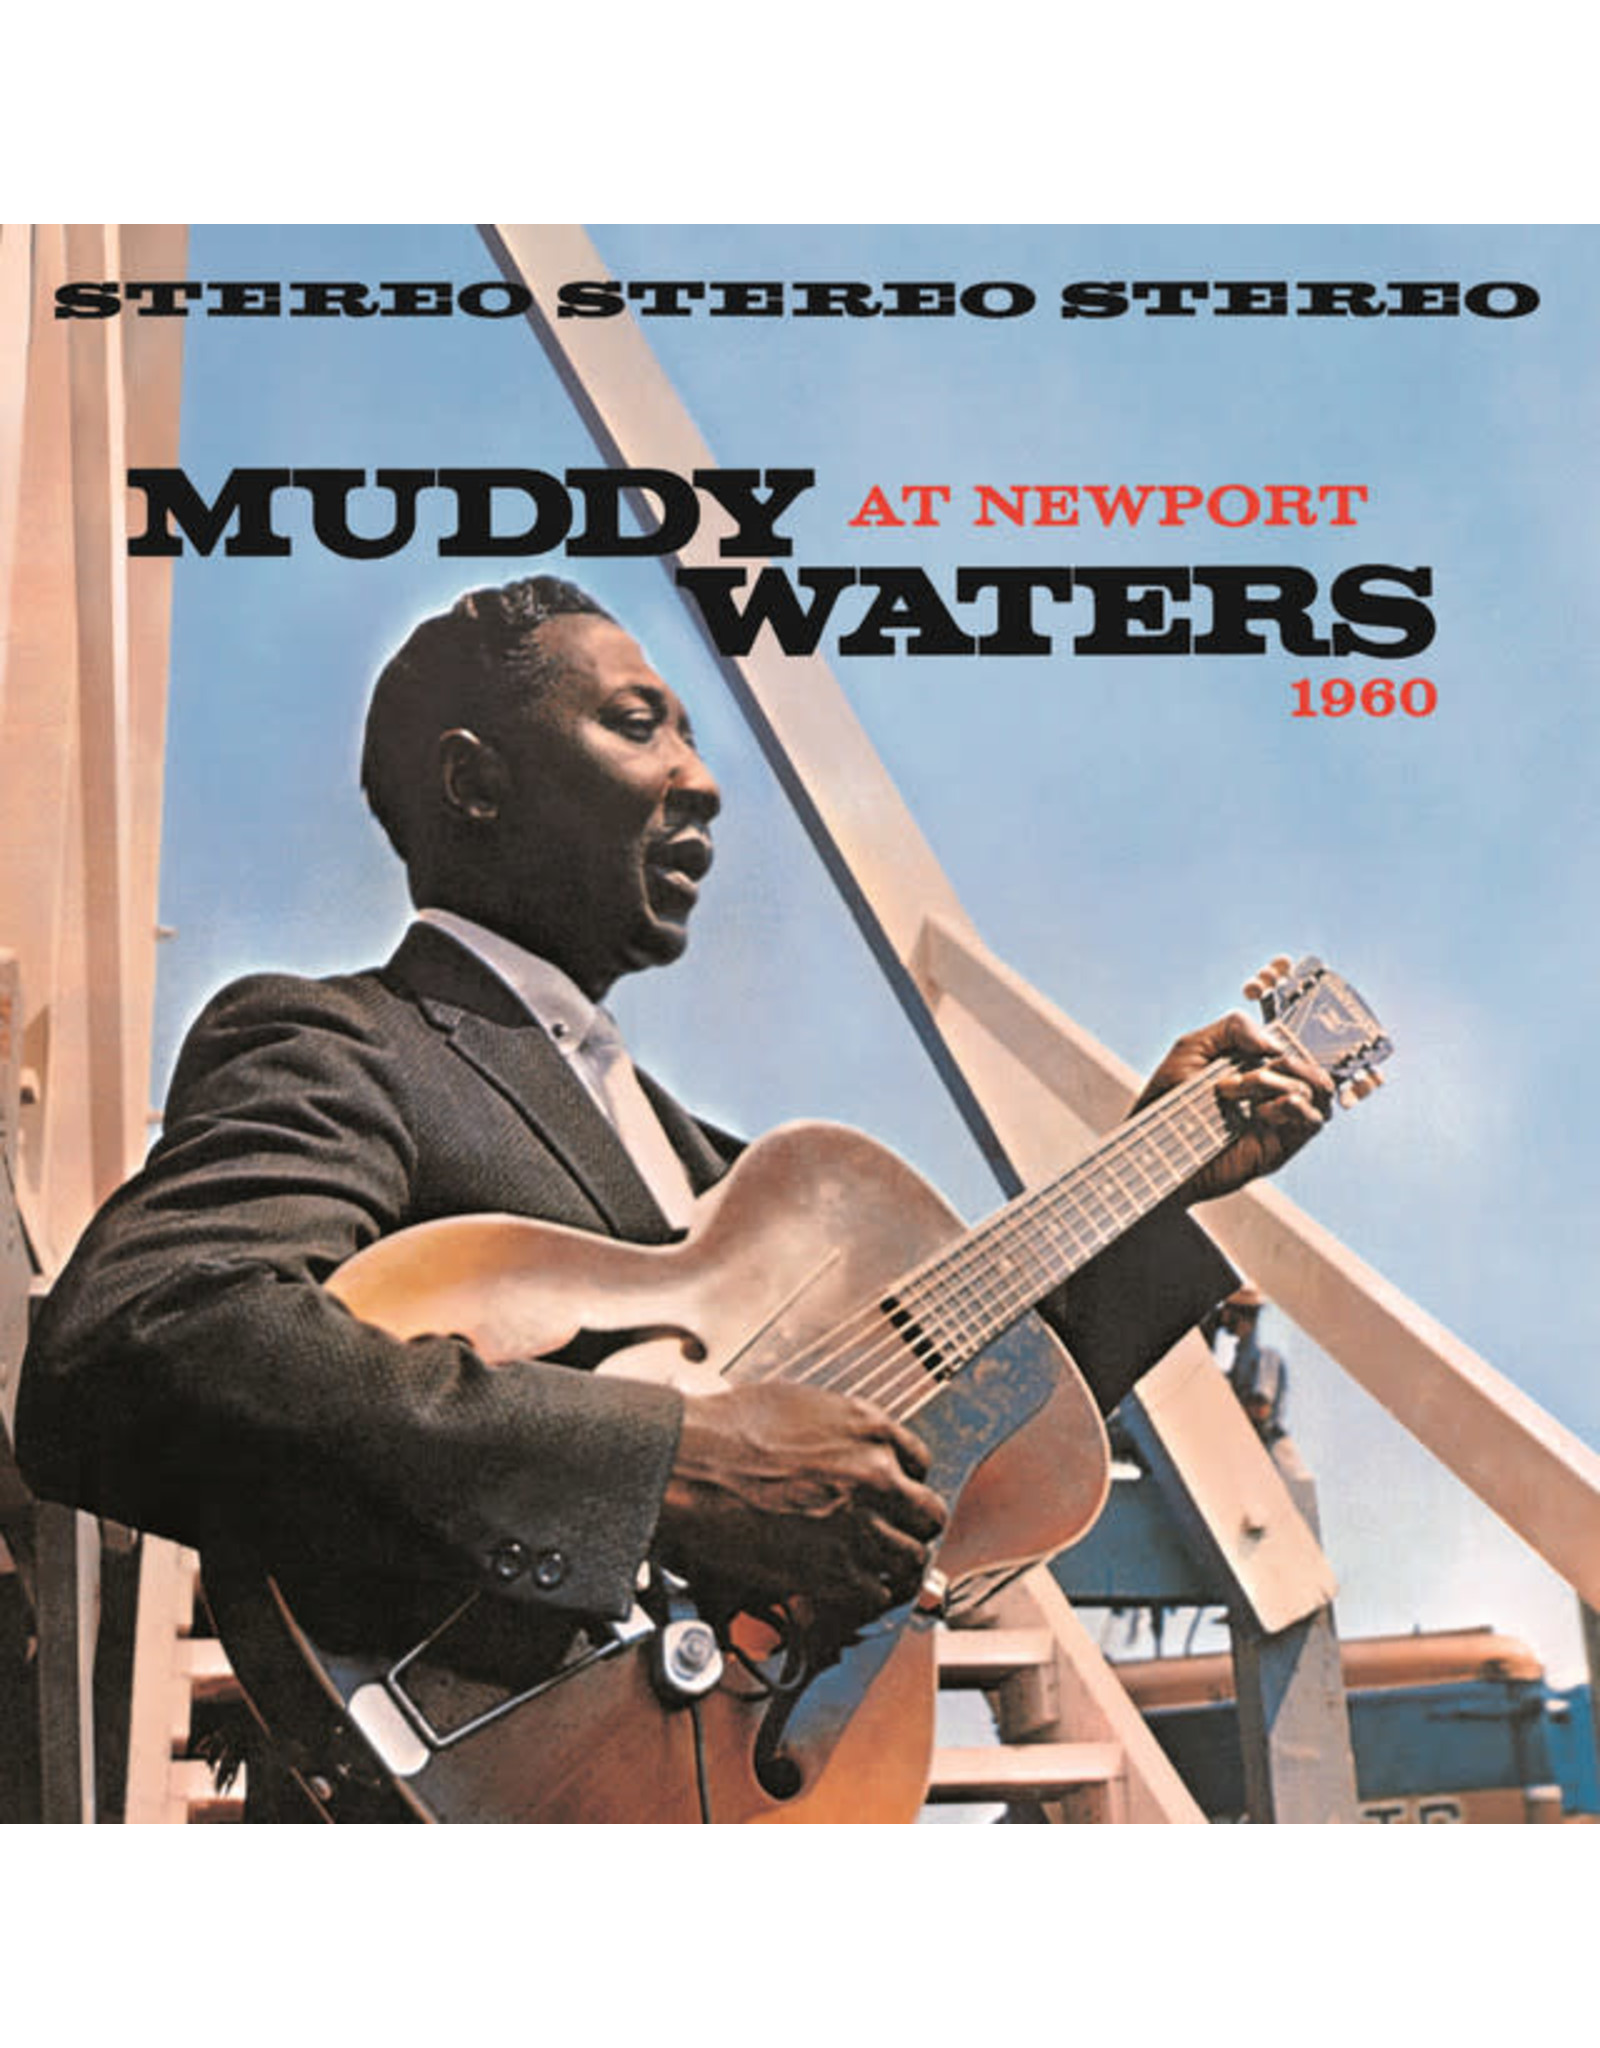 Vinyl Muddy Waters - Live at Newport 1960